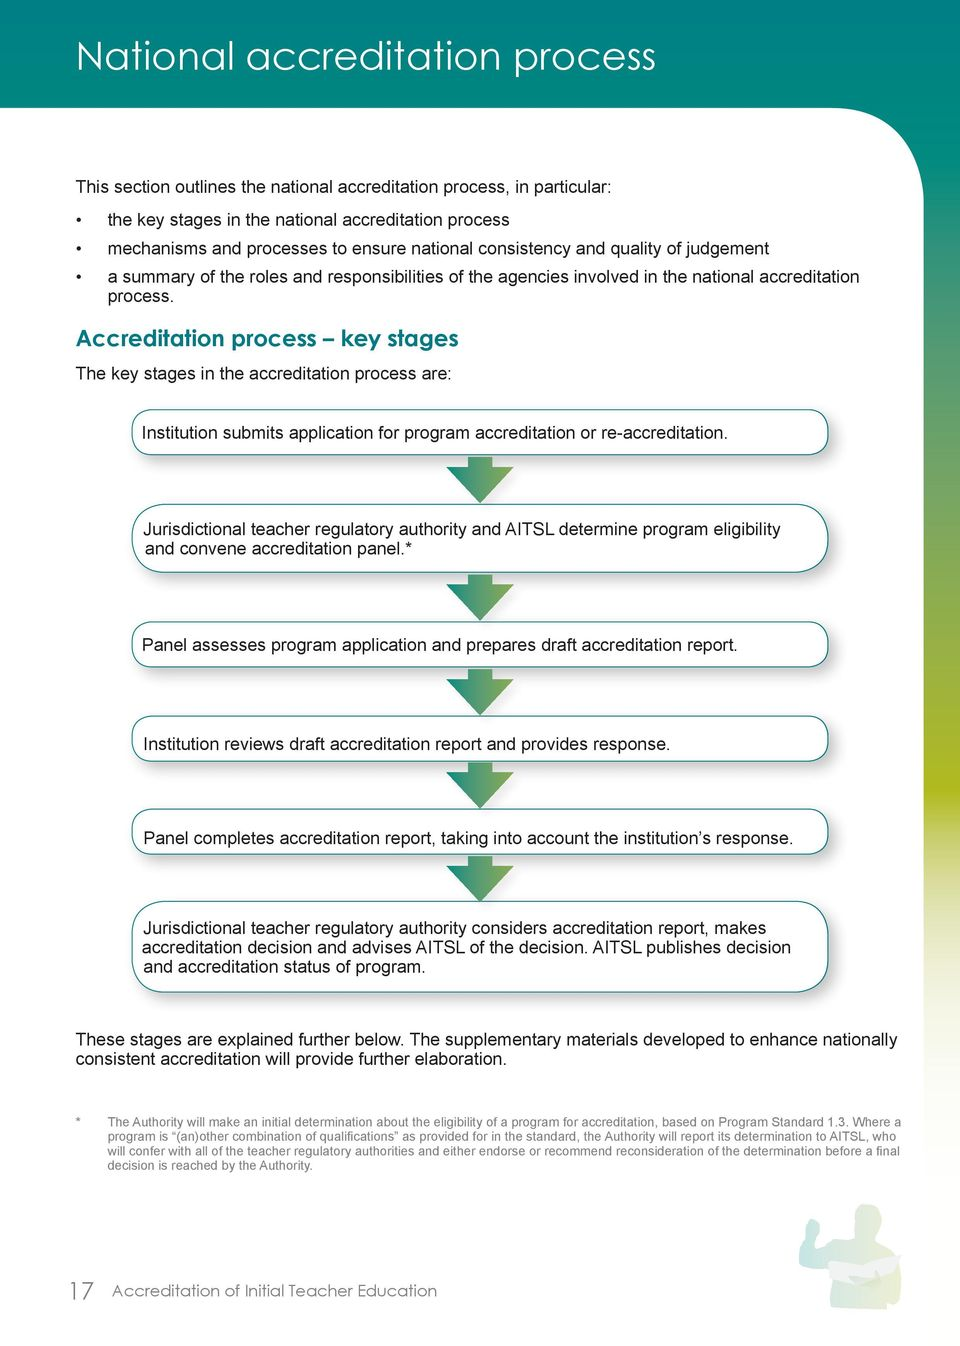 Accreditation process key stages The key stages in the accreditation process are: Institution submits application for program accreditation or re-accreditation.